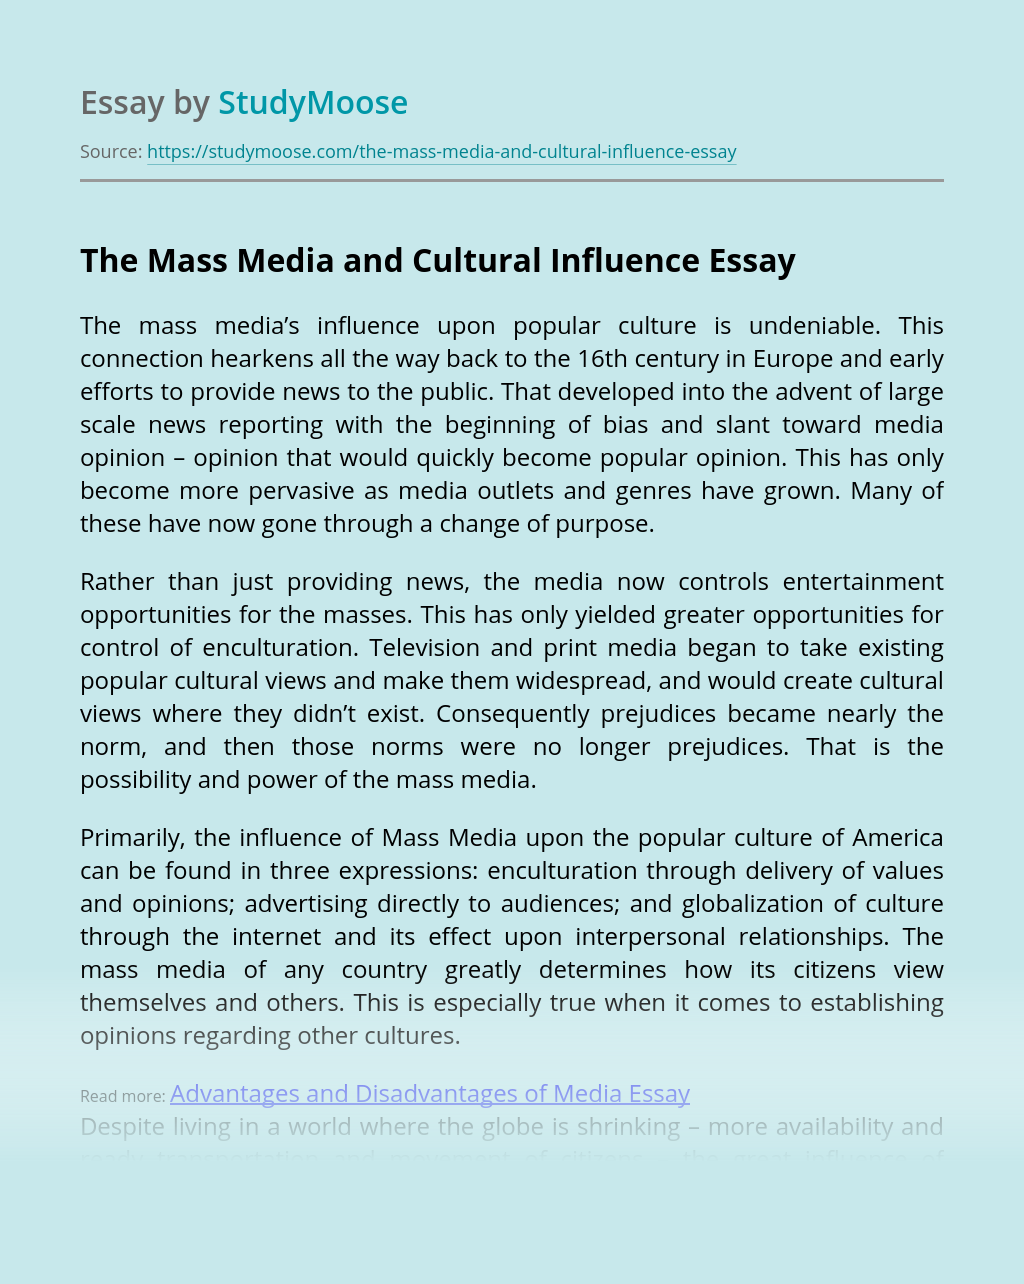 The Mass Media and Cultural Influence